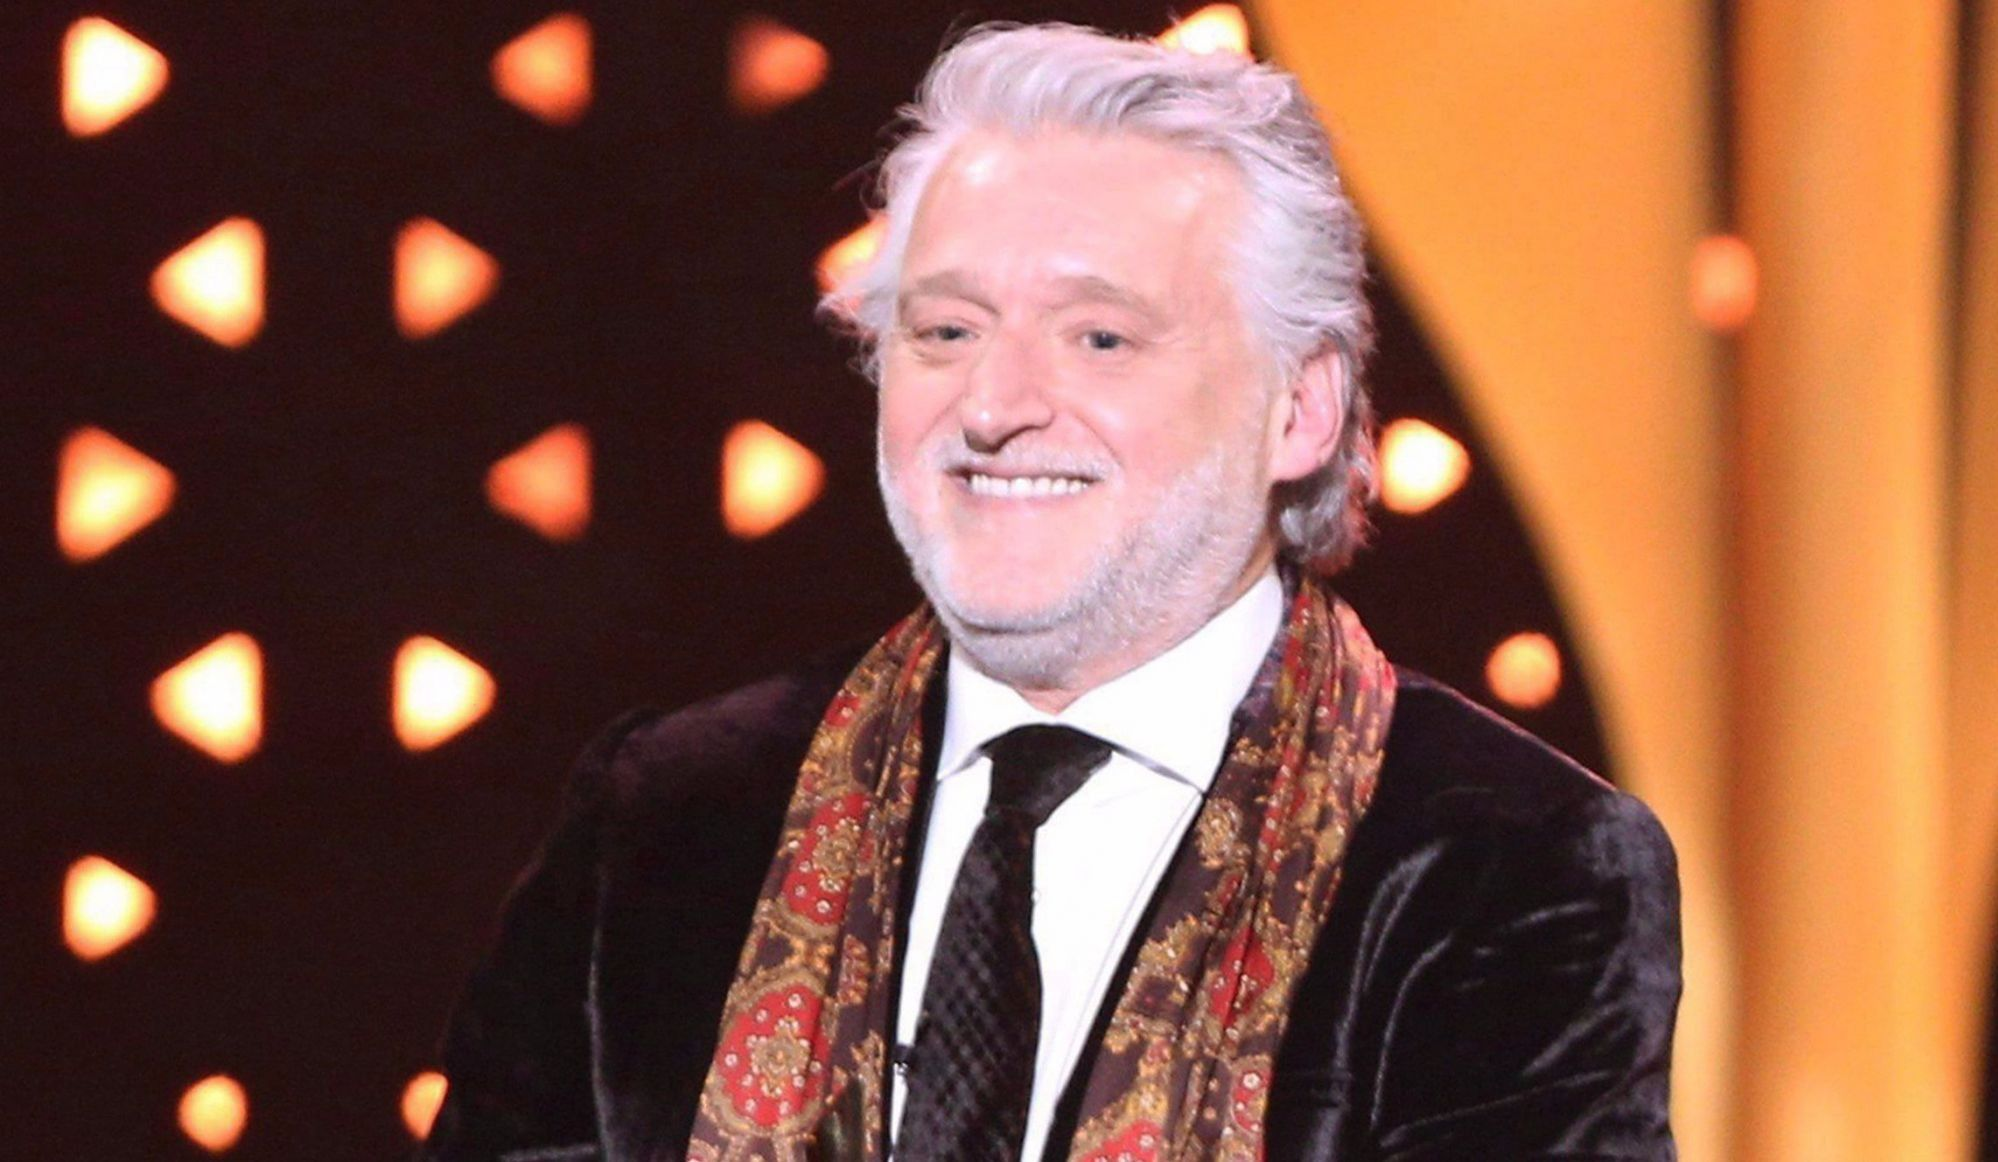 Accusé d'agressions sexuelles, il sort de son silence — Gilbert Rozon